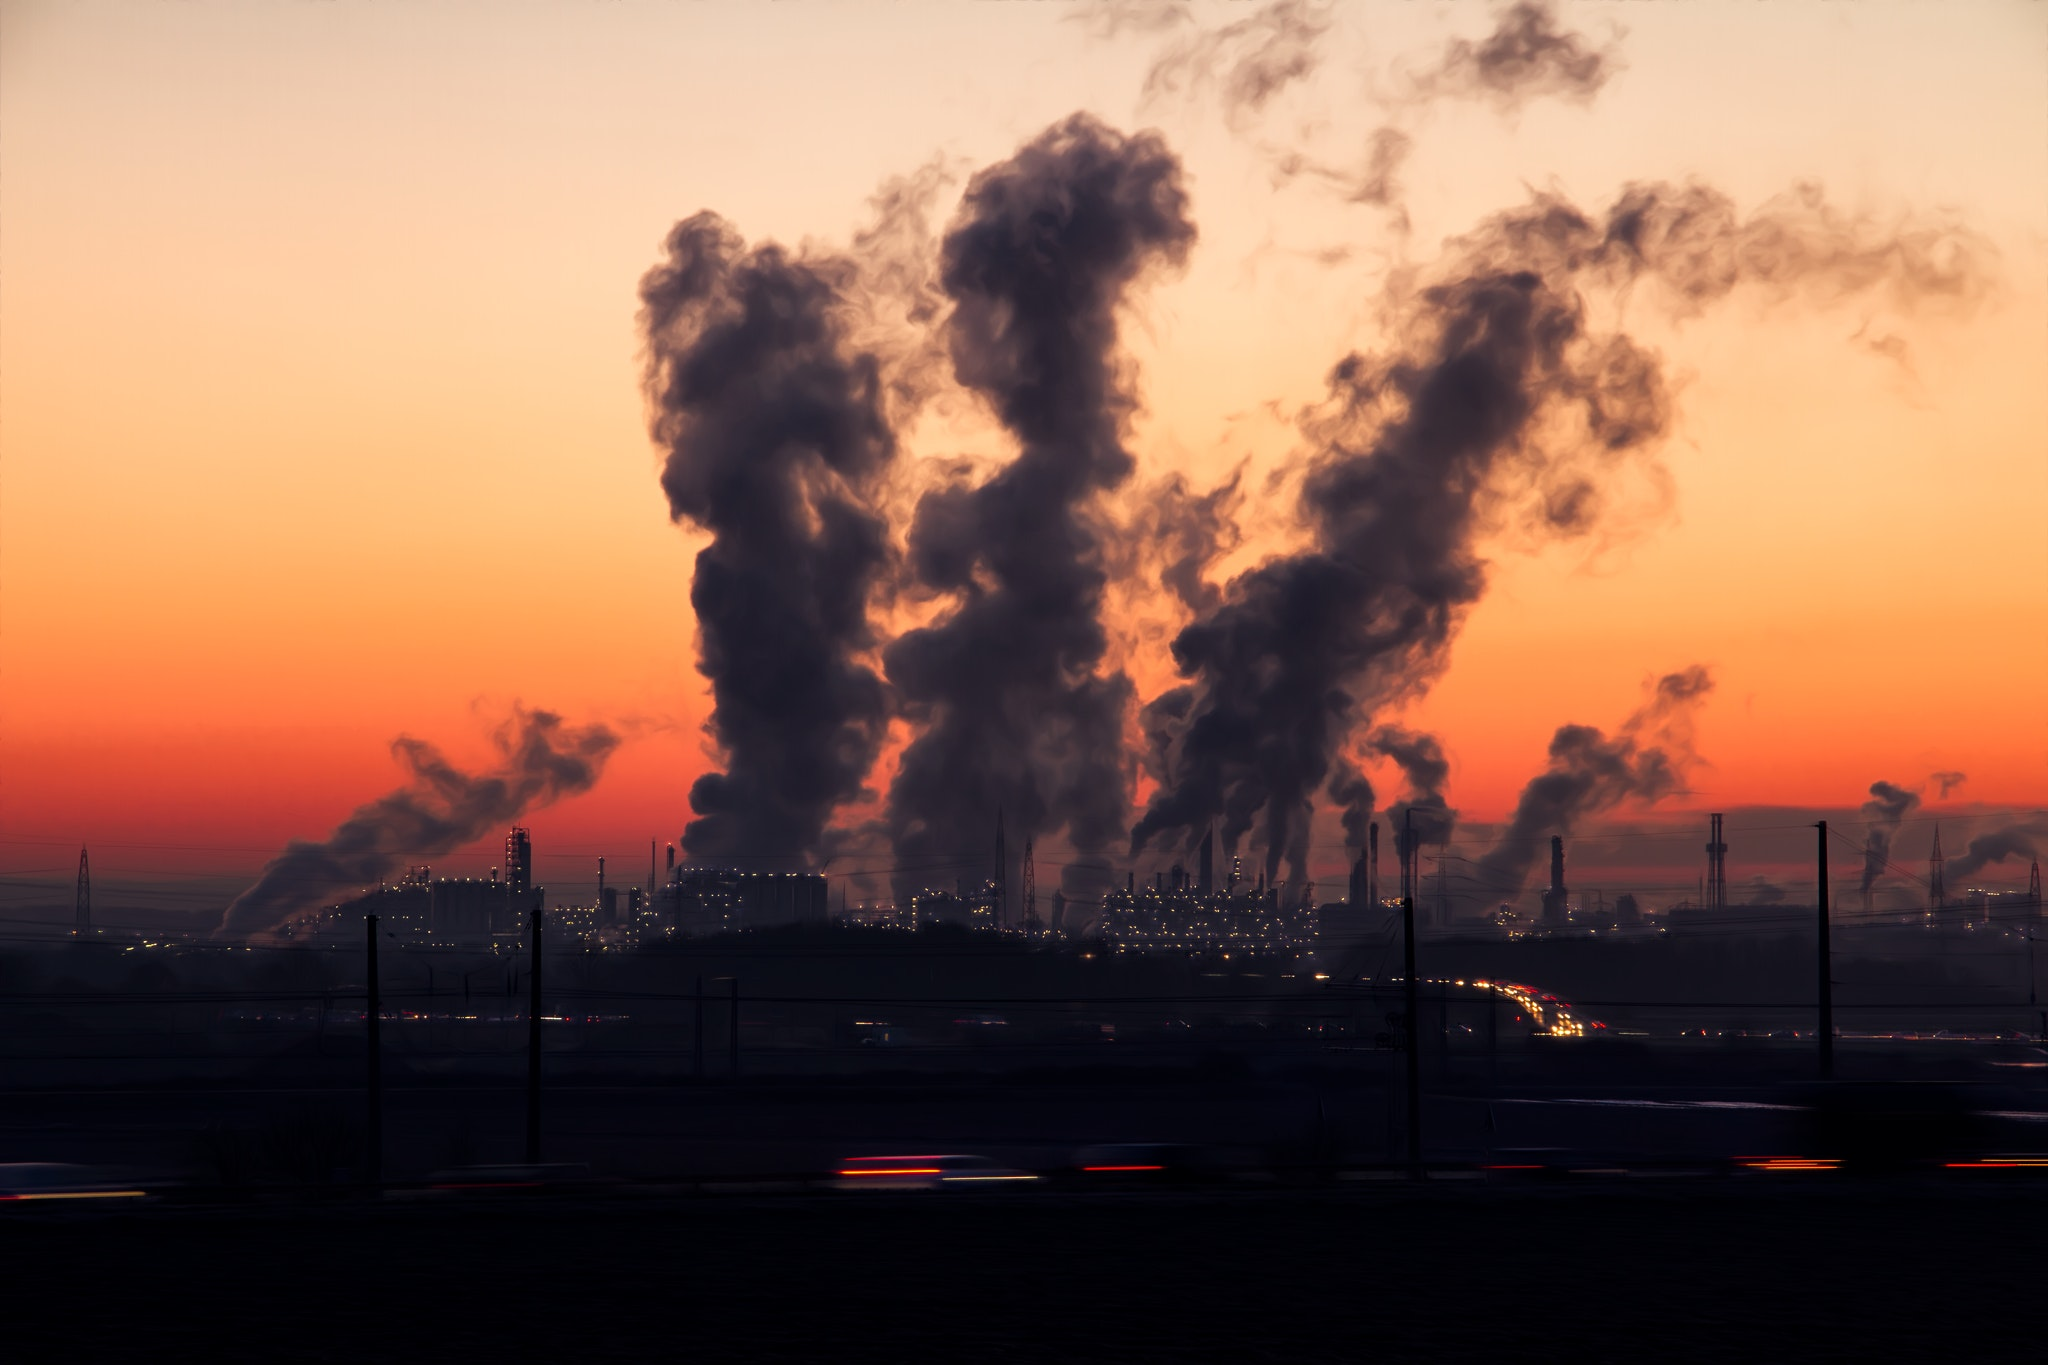 Fossil fuels such as coal, gas and oil still are large threads concerning global warming.